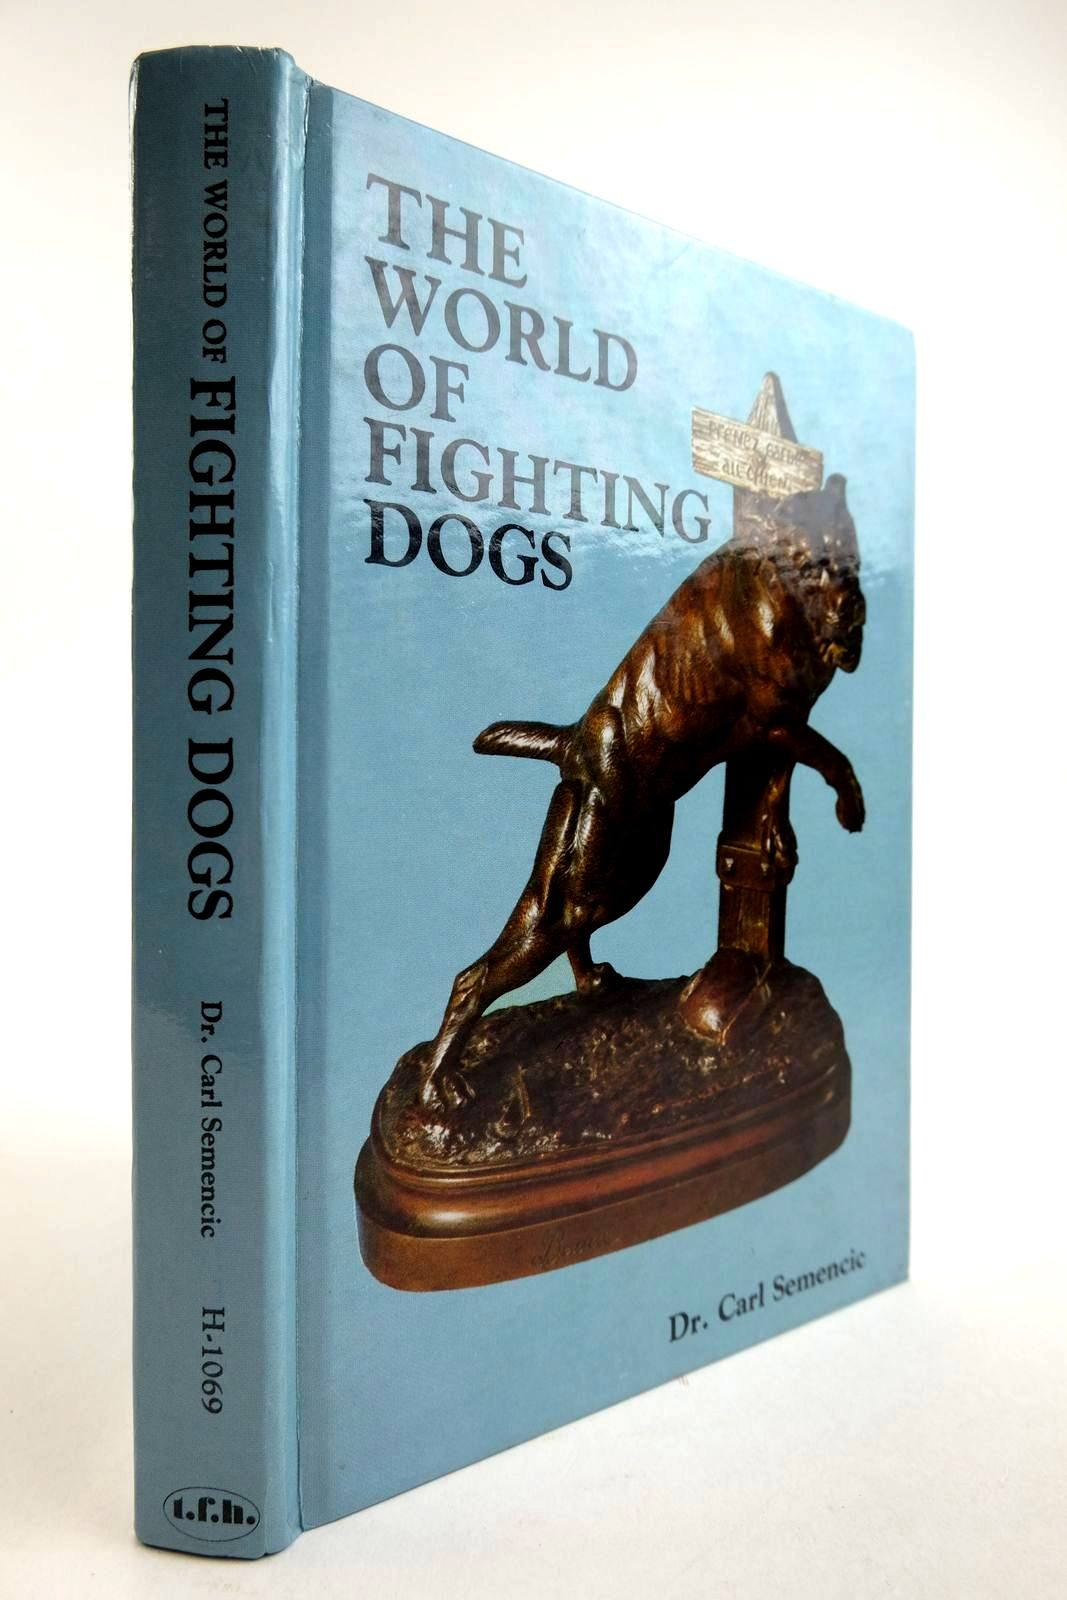 Photo of THE WORLD OF FIGHTING DOGS written by Semencic, Carl published by T.F.H. Publications Ltd. (STOCK CODE: 2134296)  for sale by Stella & Rose's Books